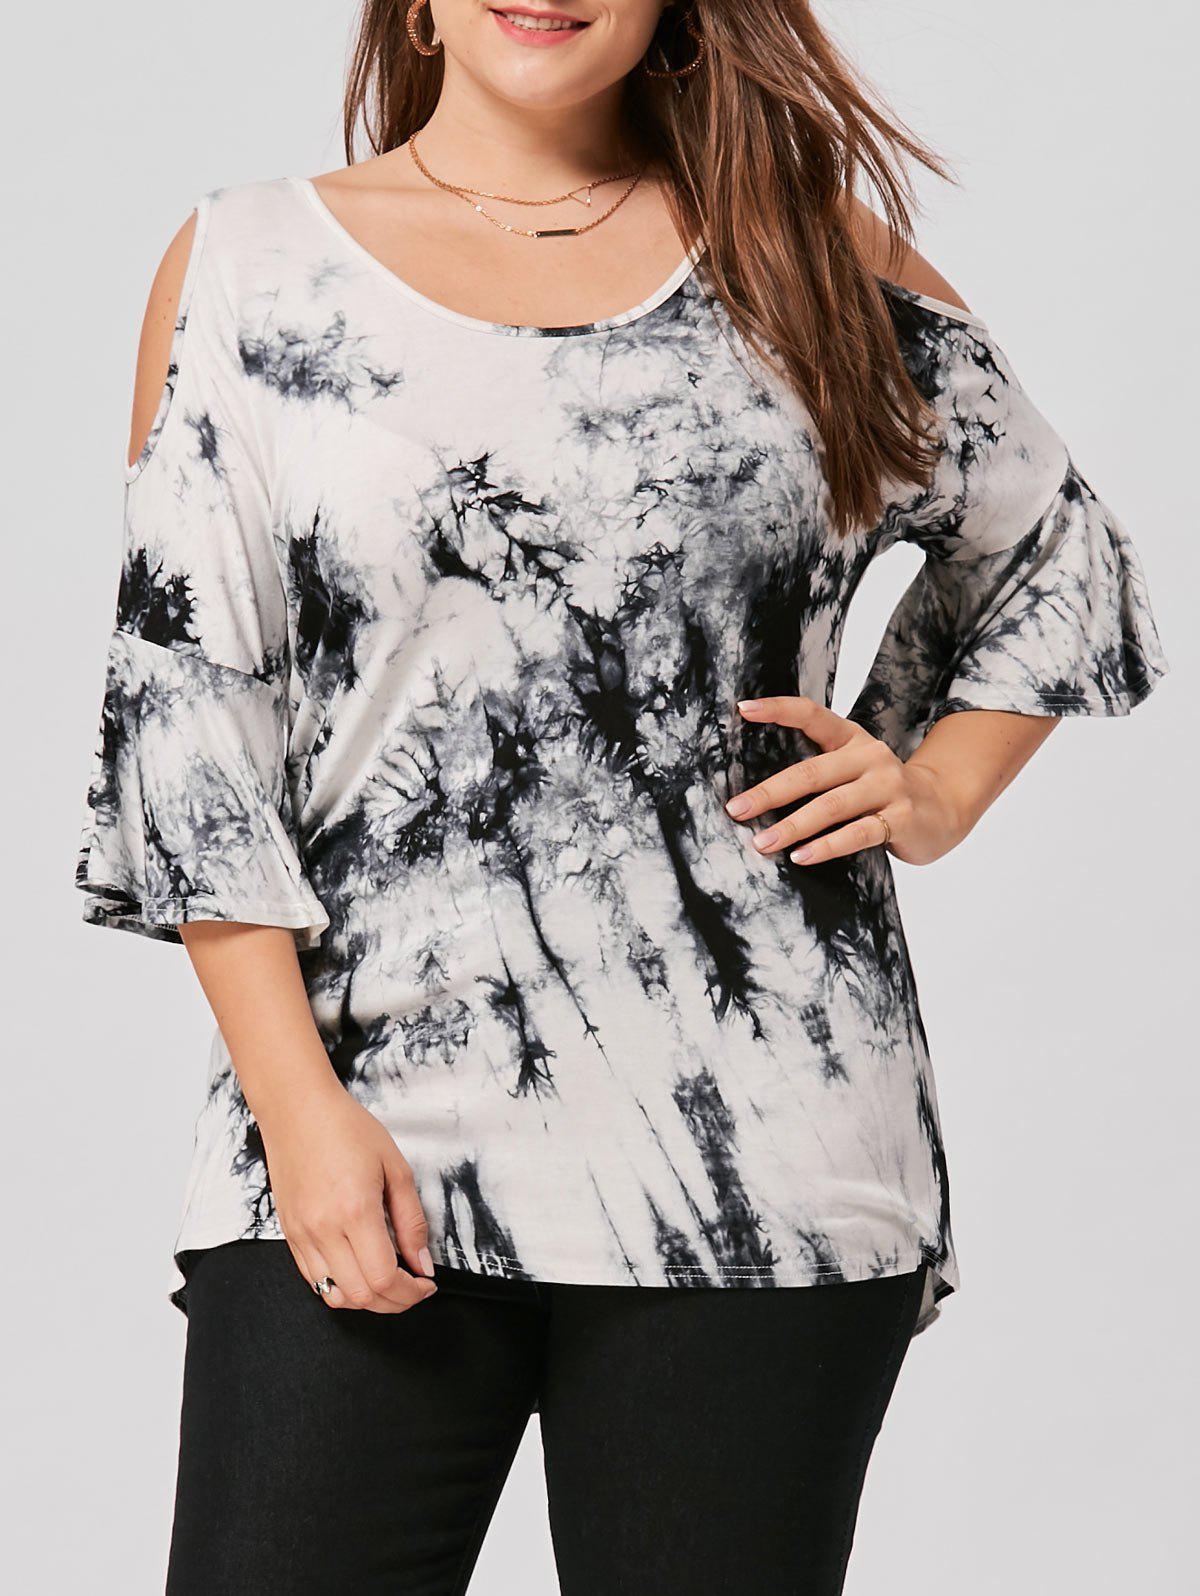 Plus Size Open Shoulder Tie Dye Top - WHITE/BLACK 5XL